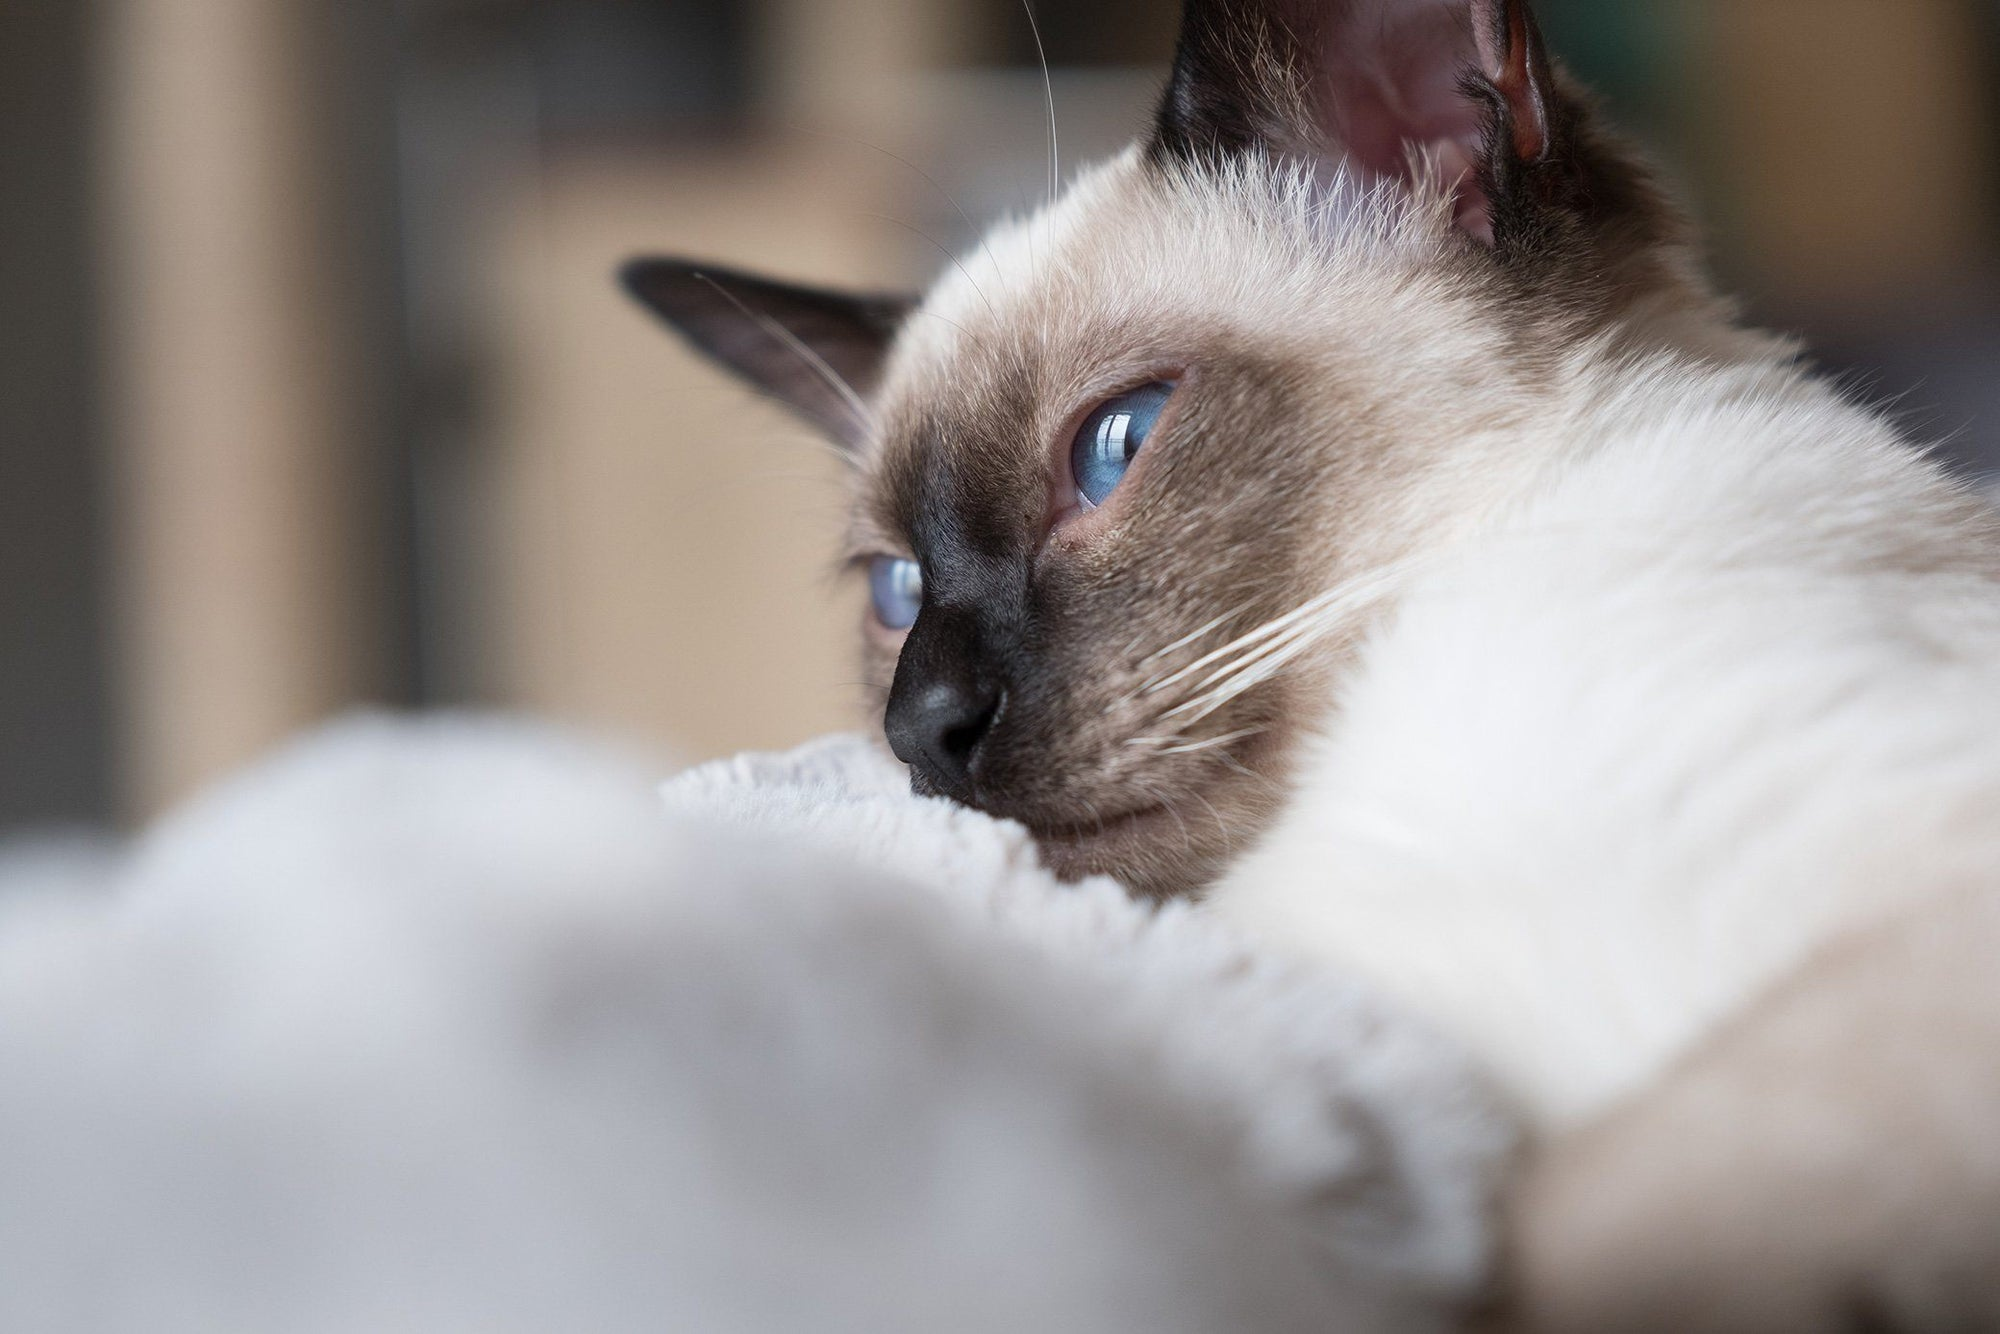 Cat Dementia: A Very Real & Scary Health Condition Pet Parents Should Watch For